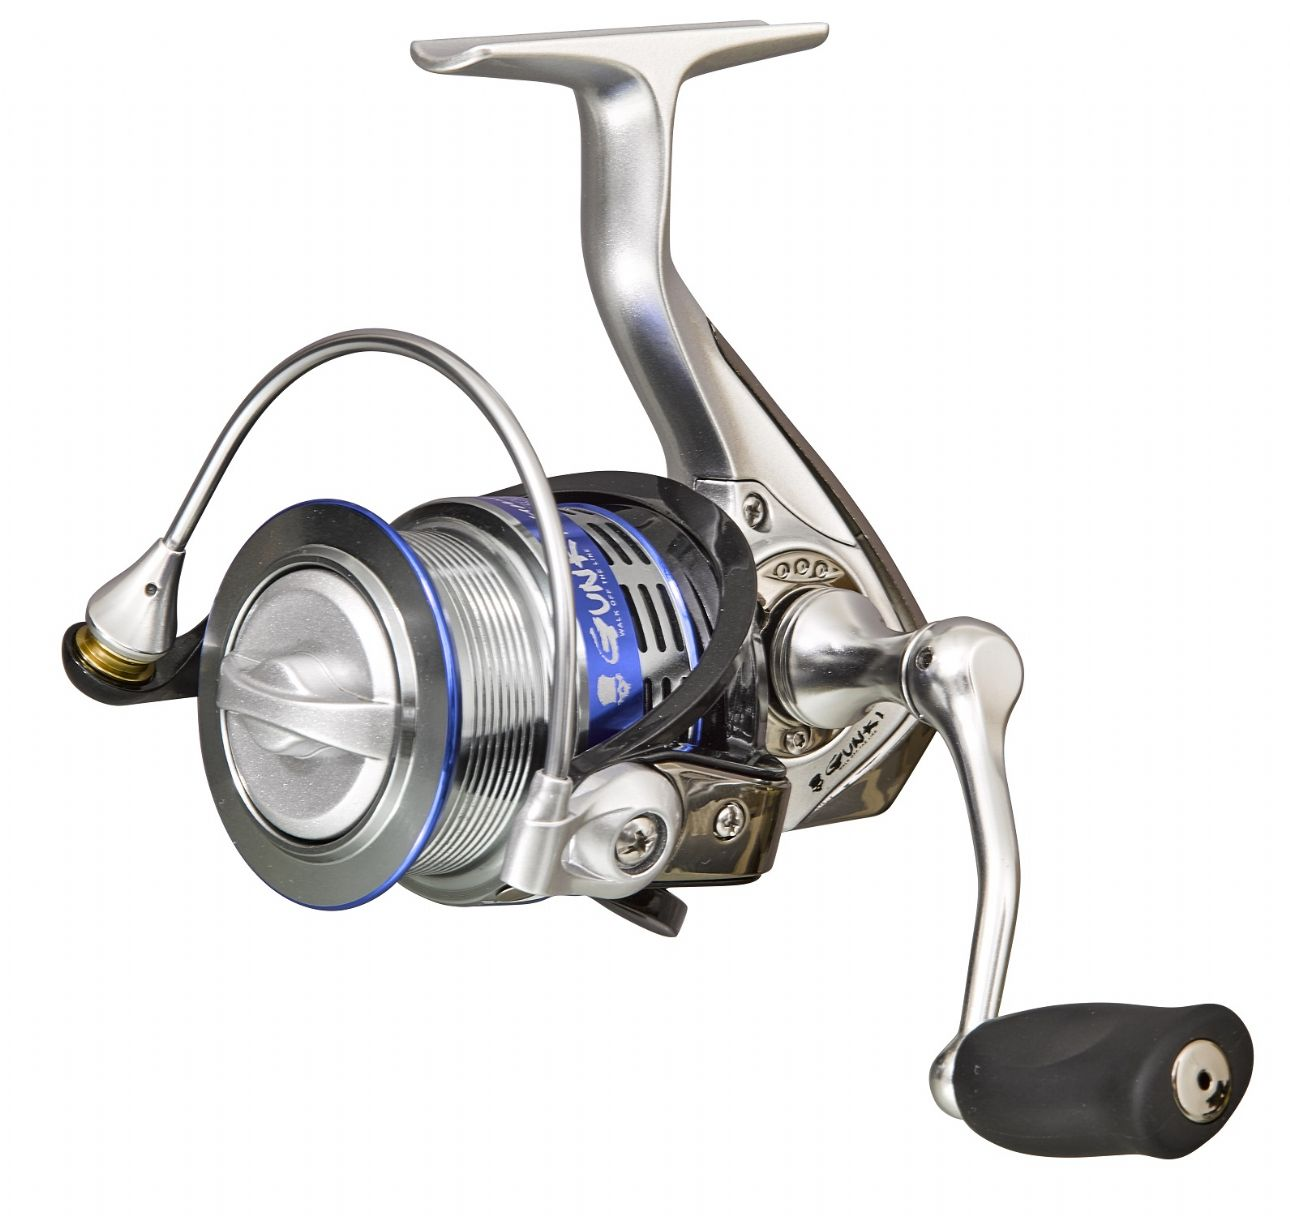 Gunki Umi FV Reels from PredatorTackle.co.uk